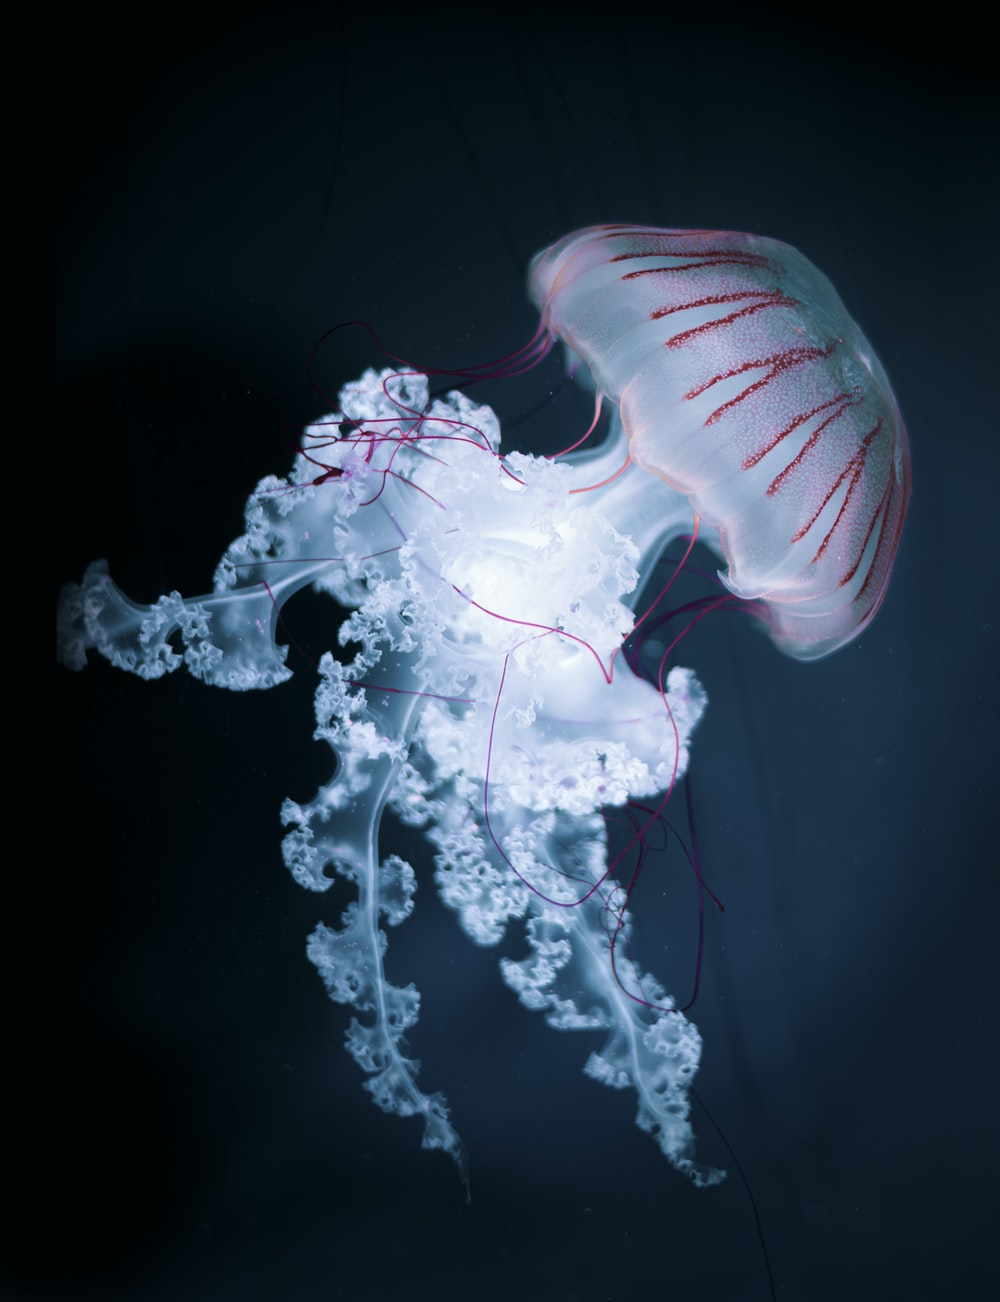 white and pink jelly fish